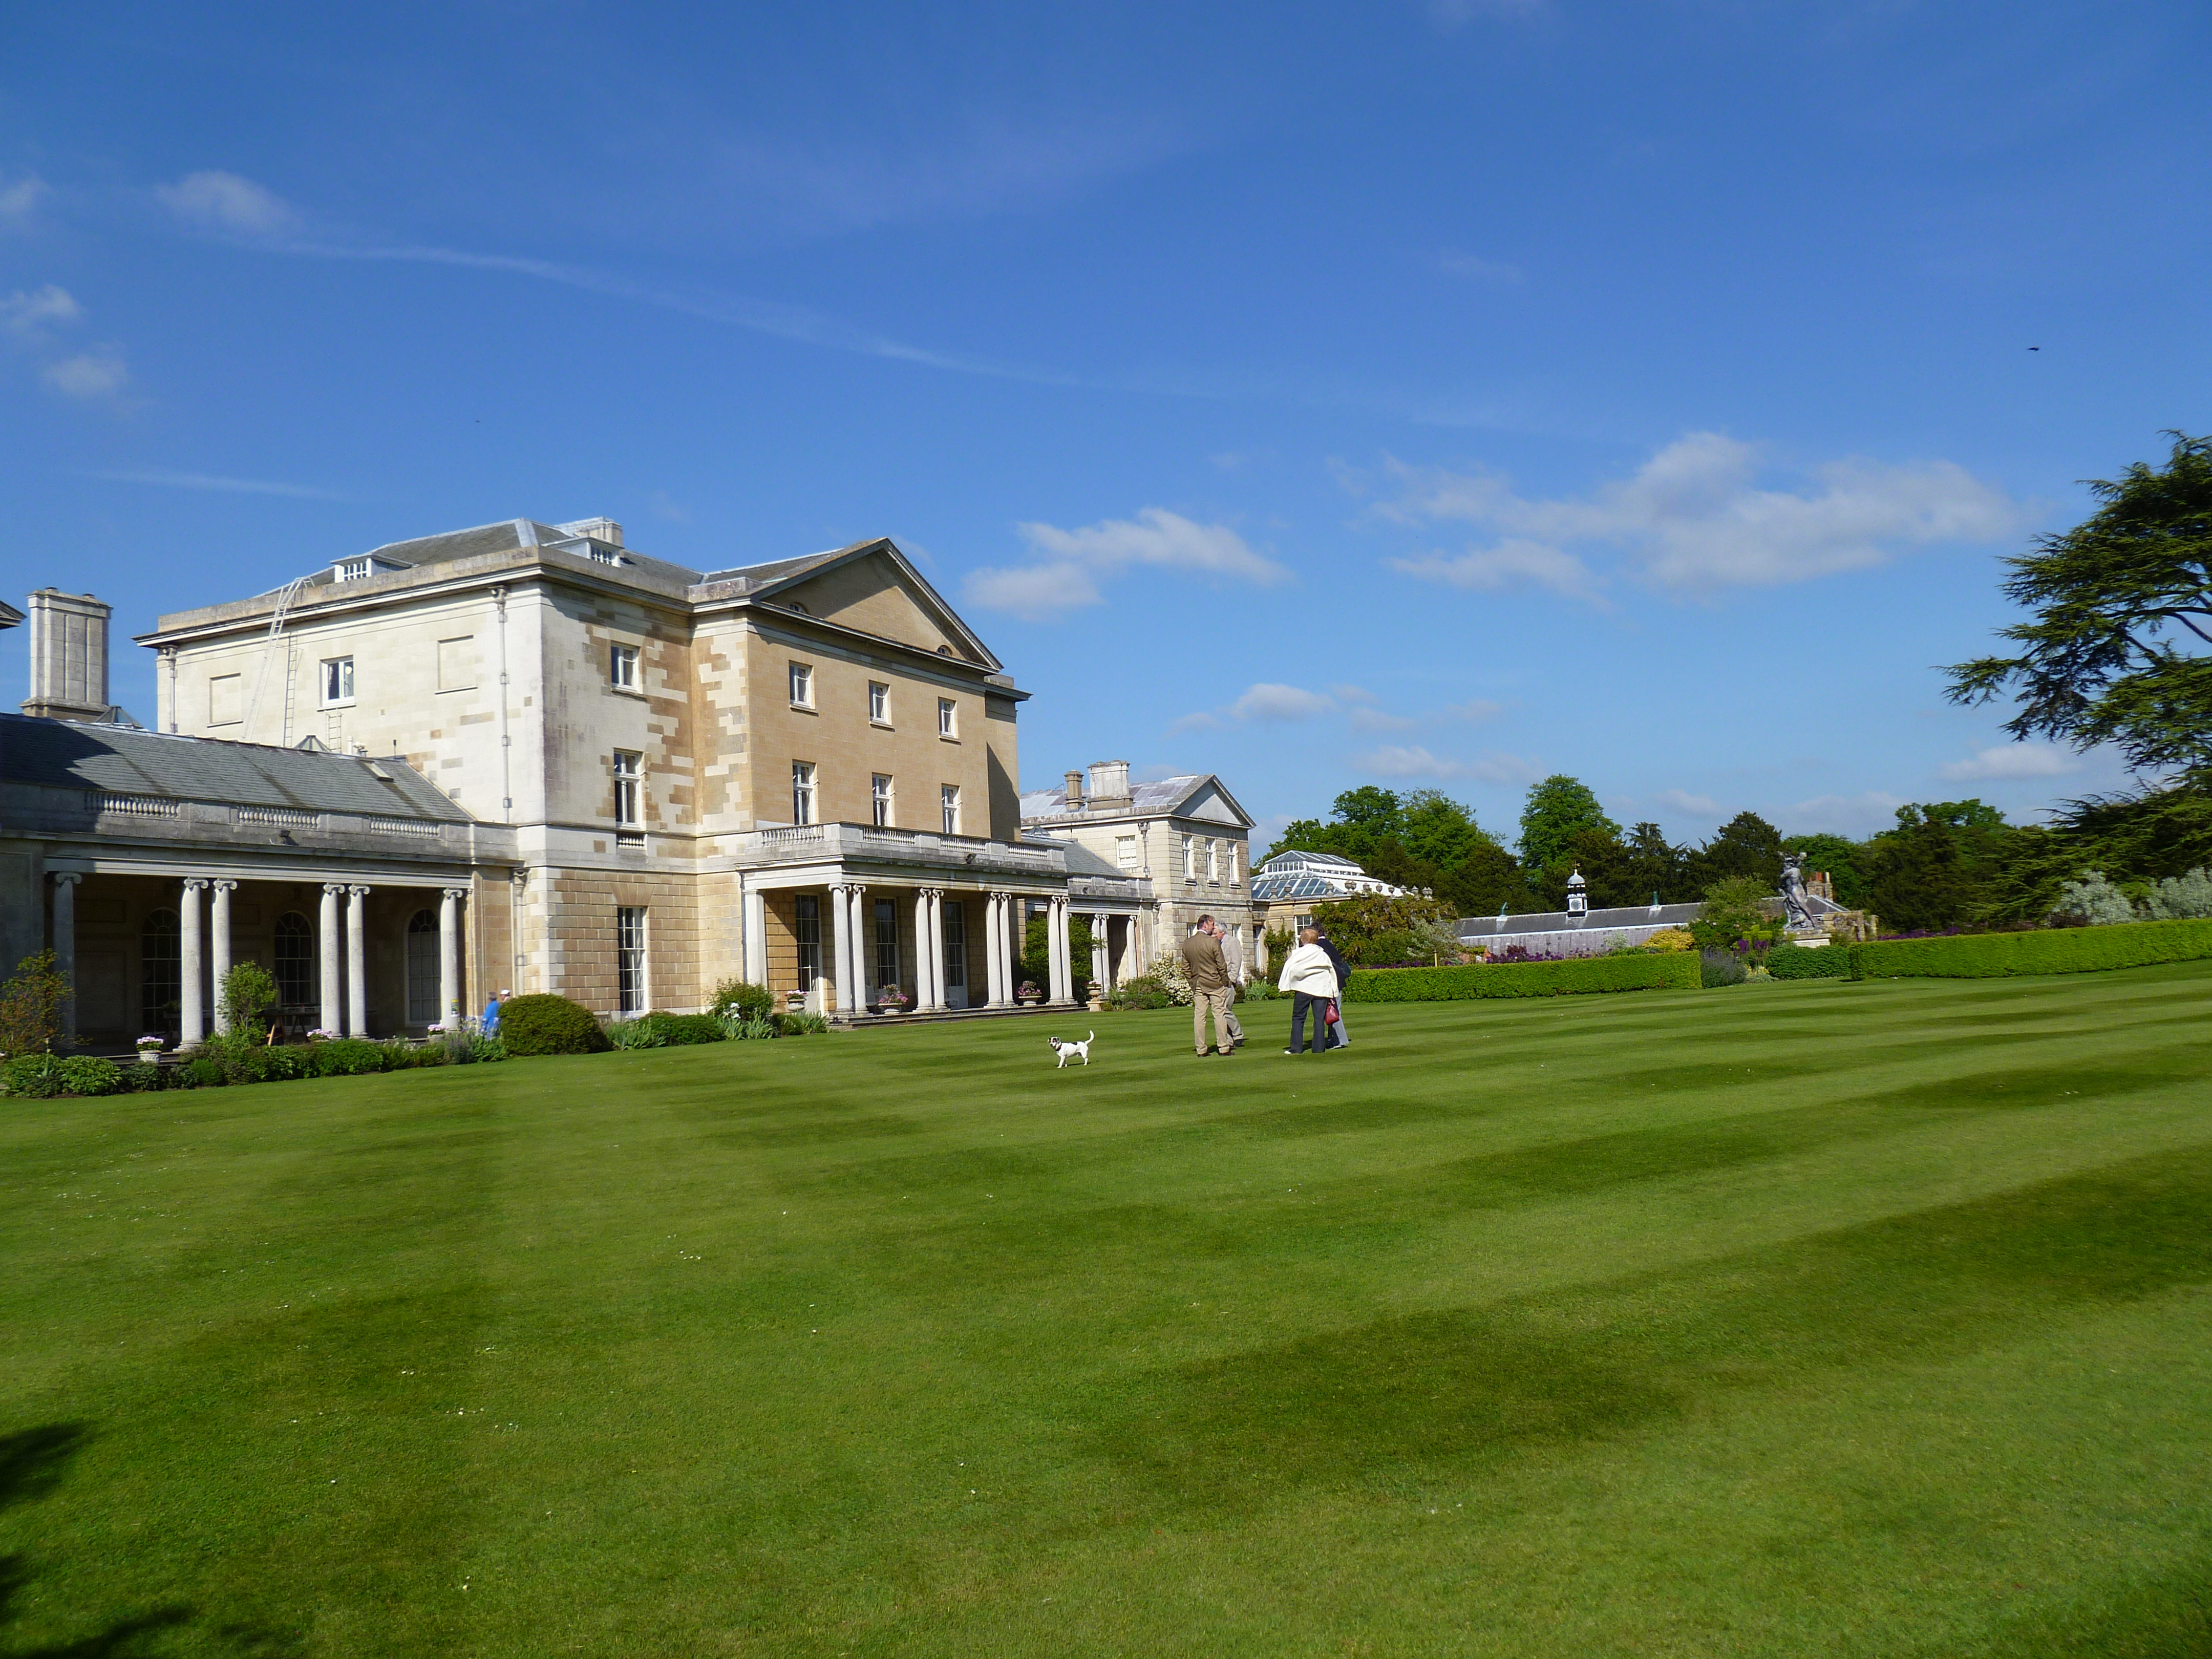 southill-house-from-the-gardens-2